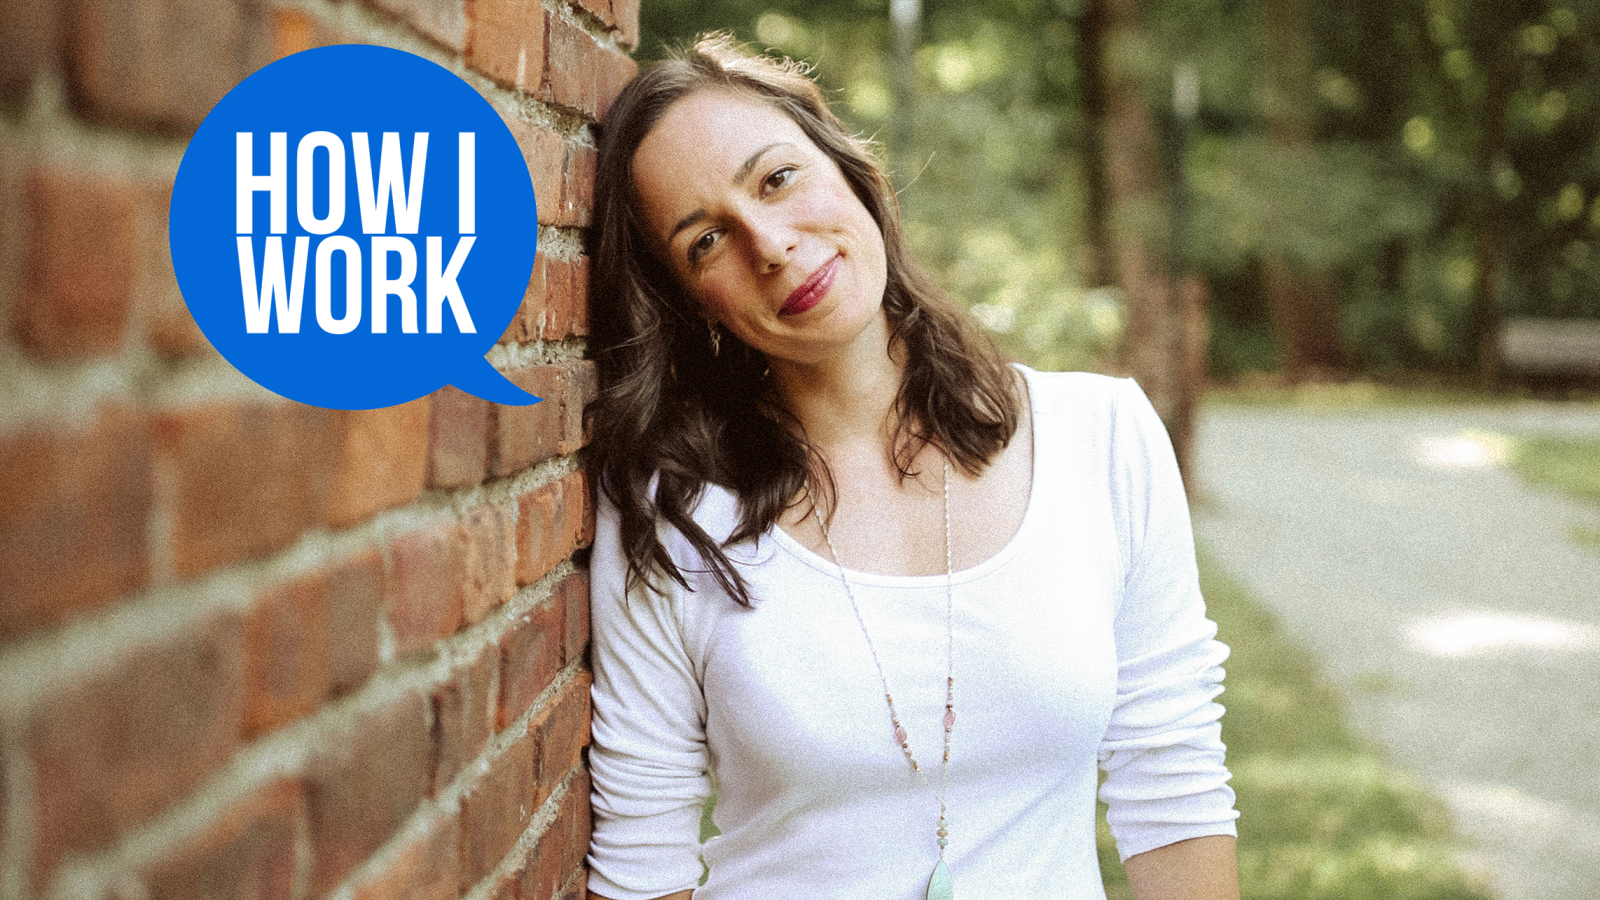 I'm Melinda Wenner Moyer, Author of 'How to Raise Kids Who Aren't Assholes', and This Is How I Work